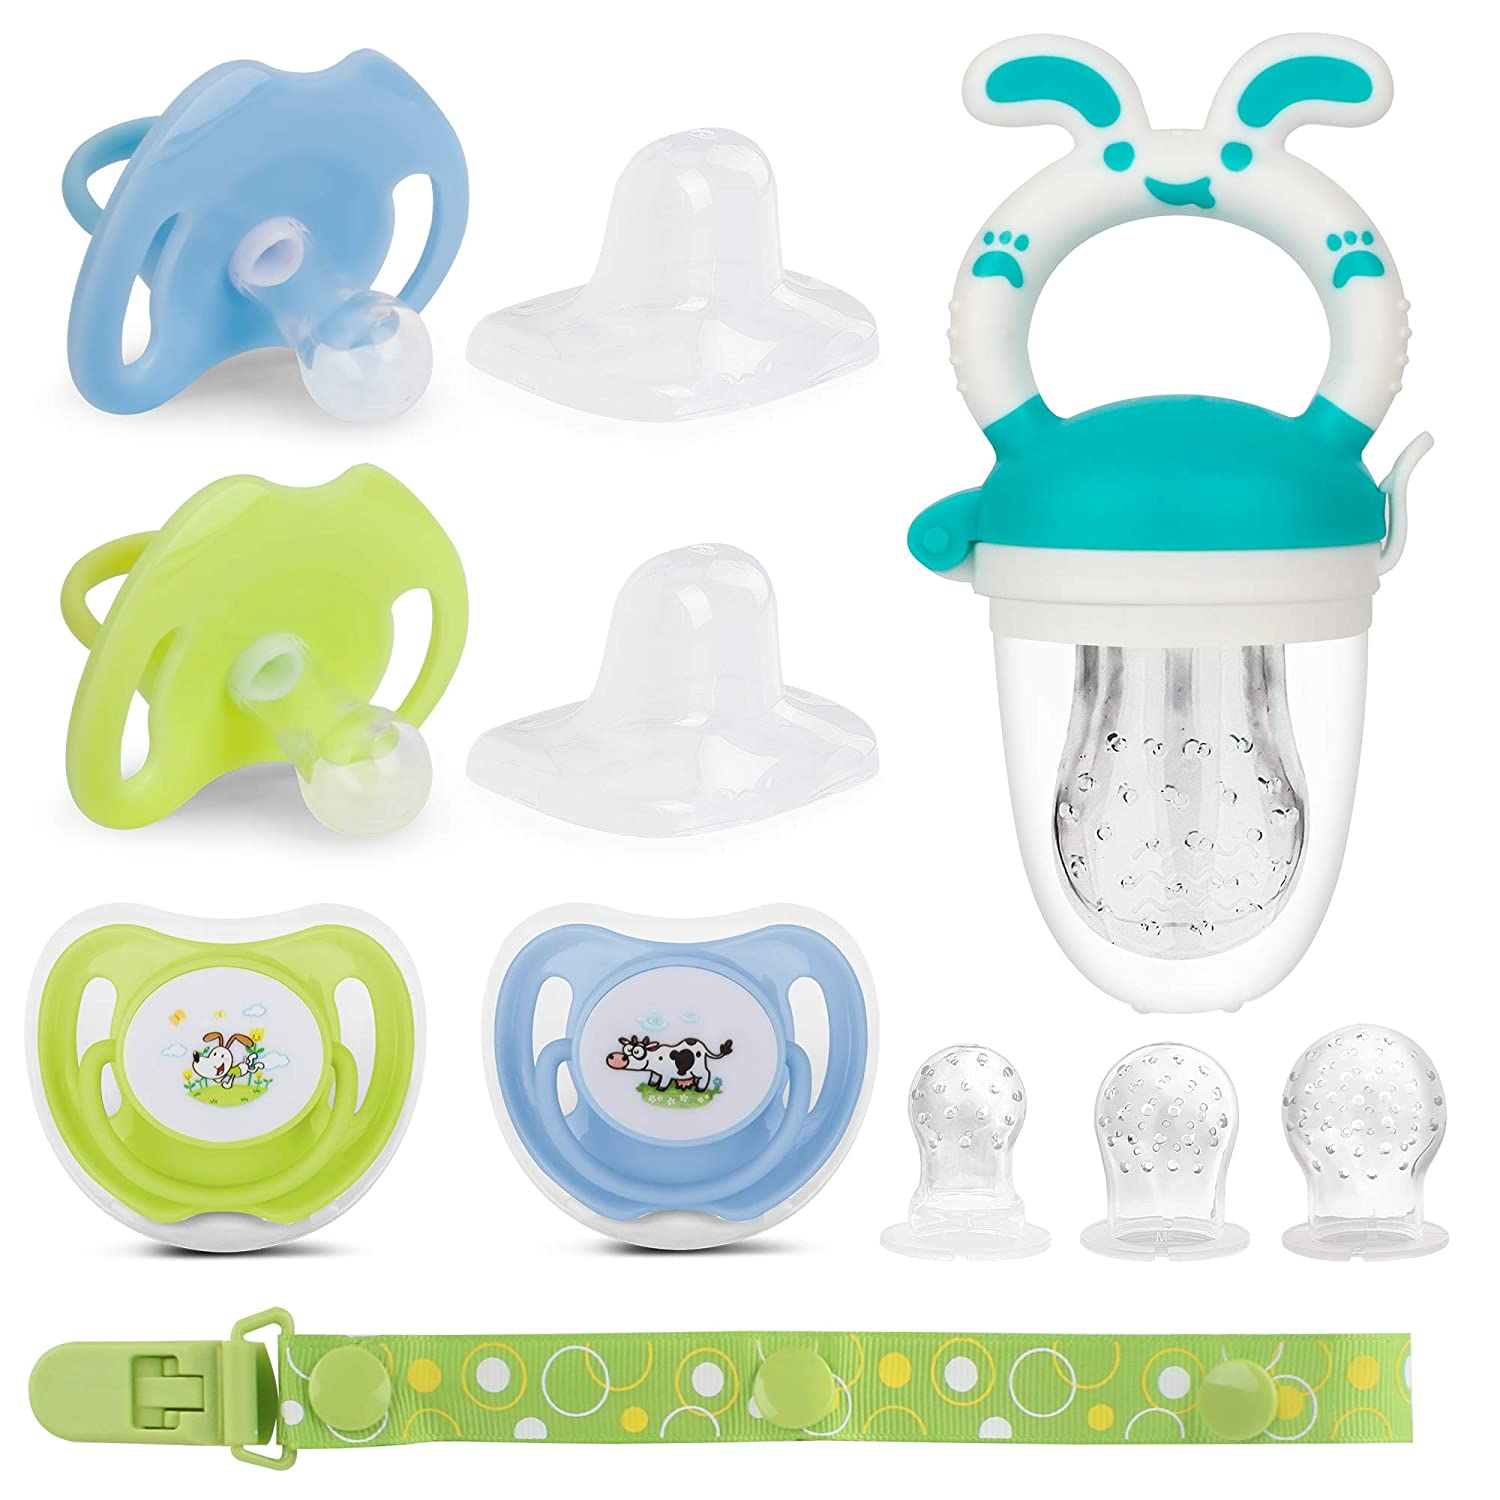 Pacifier with lid, Newborn Pacifier, Baby Fruit Feeder Set 4X Pacifiers 0-6 Months, Pacifiers 6-18 Months. Silicone Binky and Pacifier Holder Clips for 0-18 Month Girl or boy (Blue)